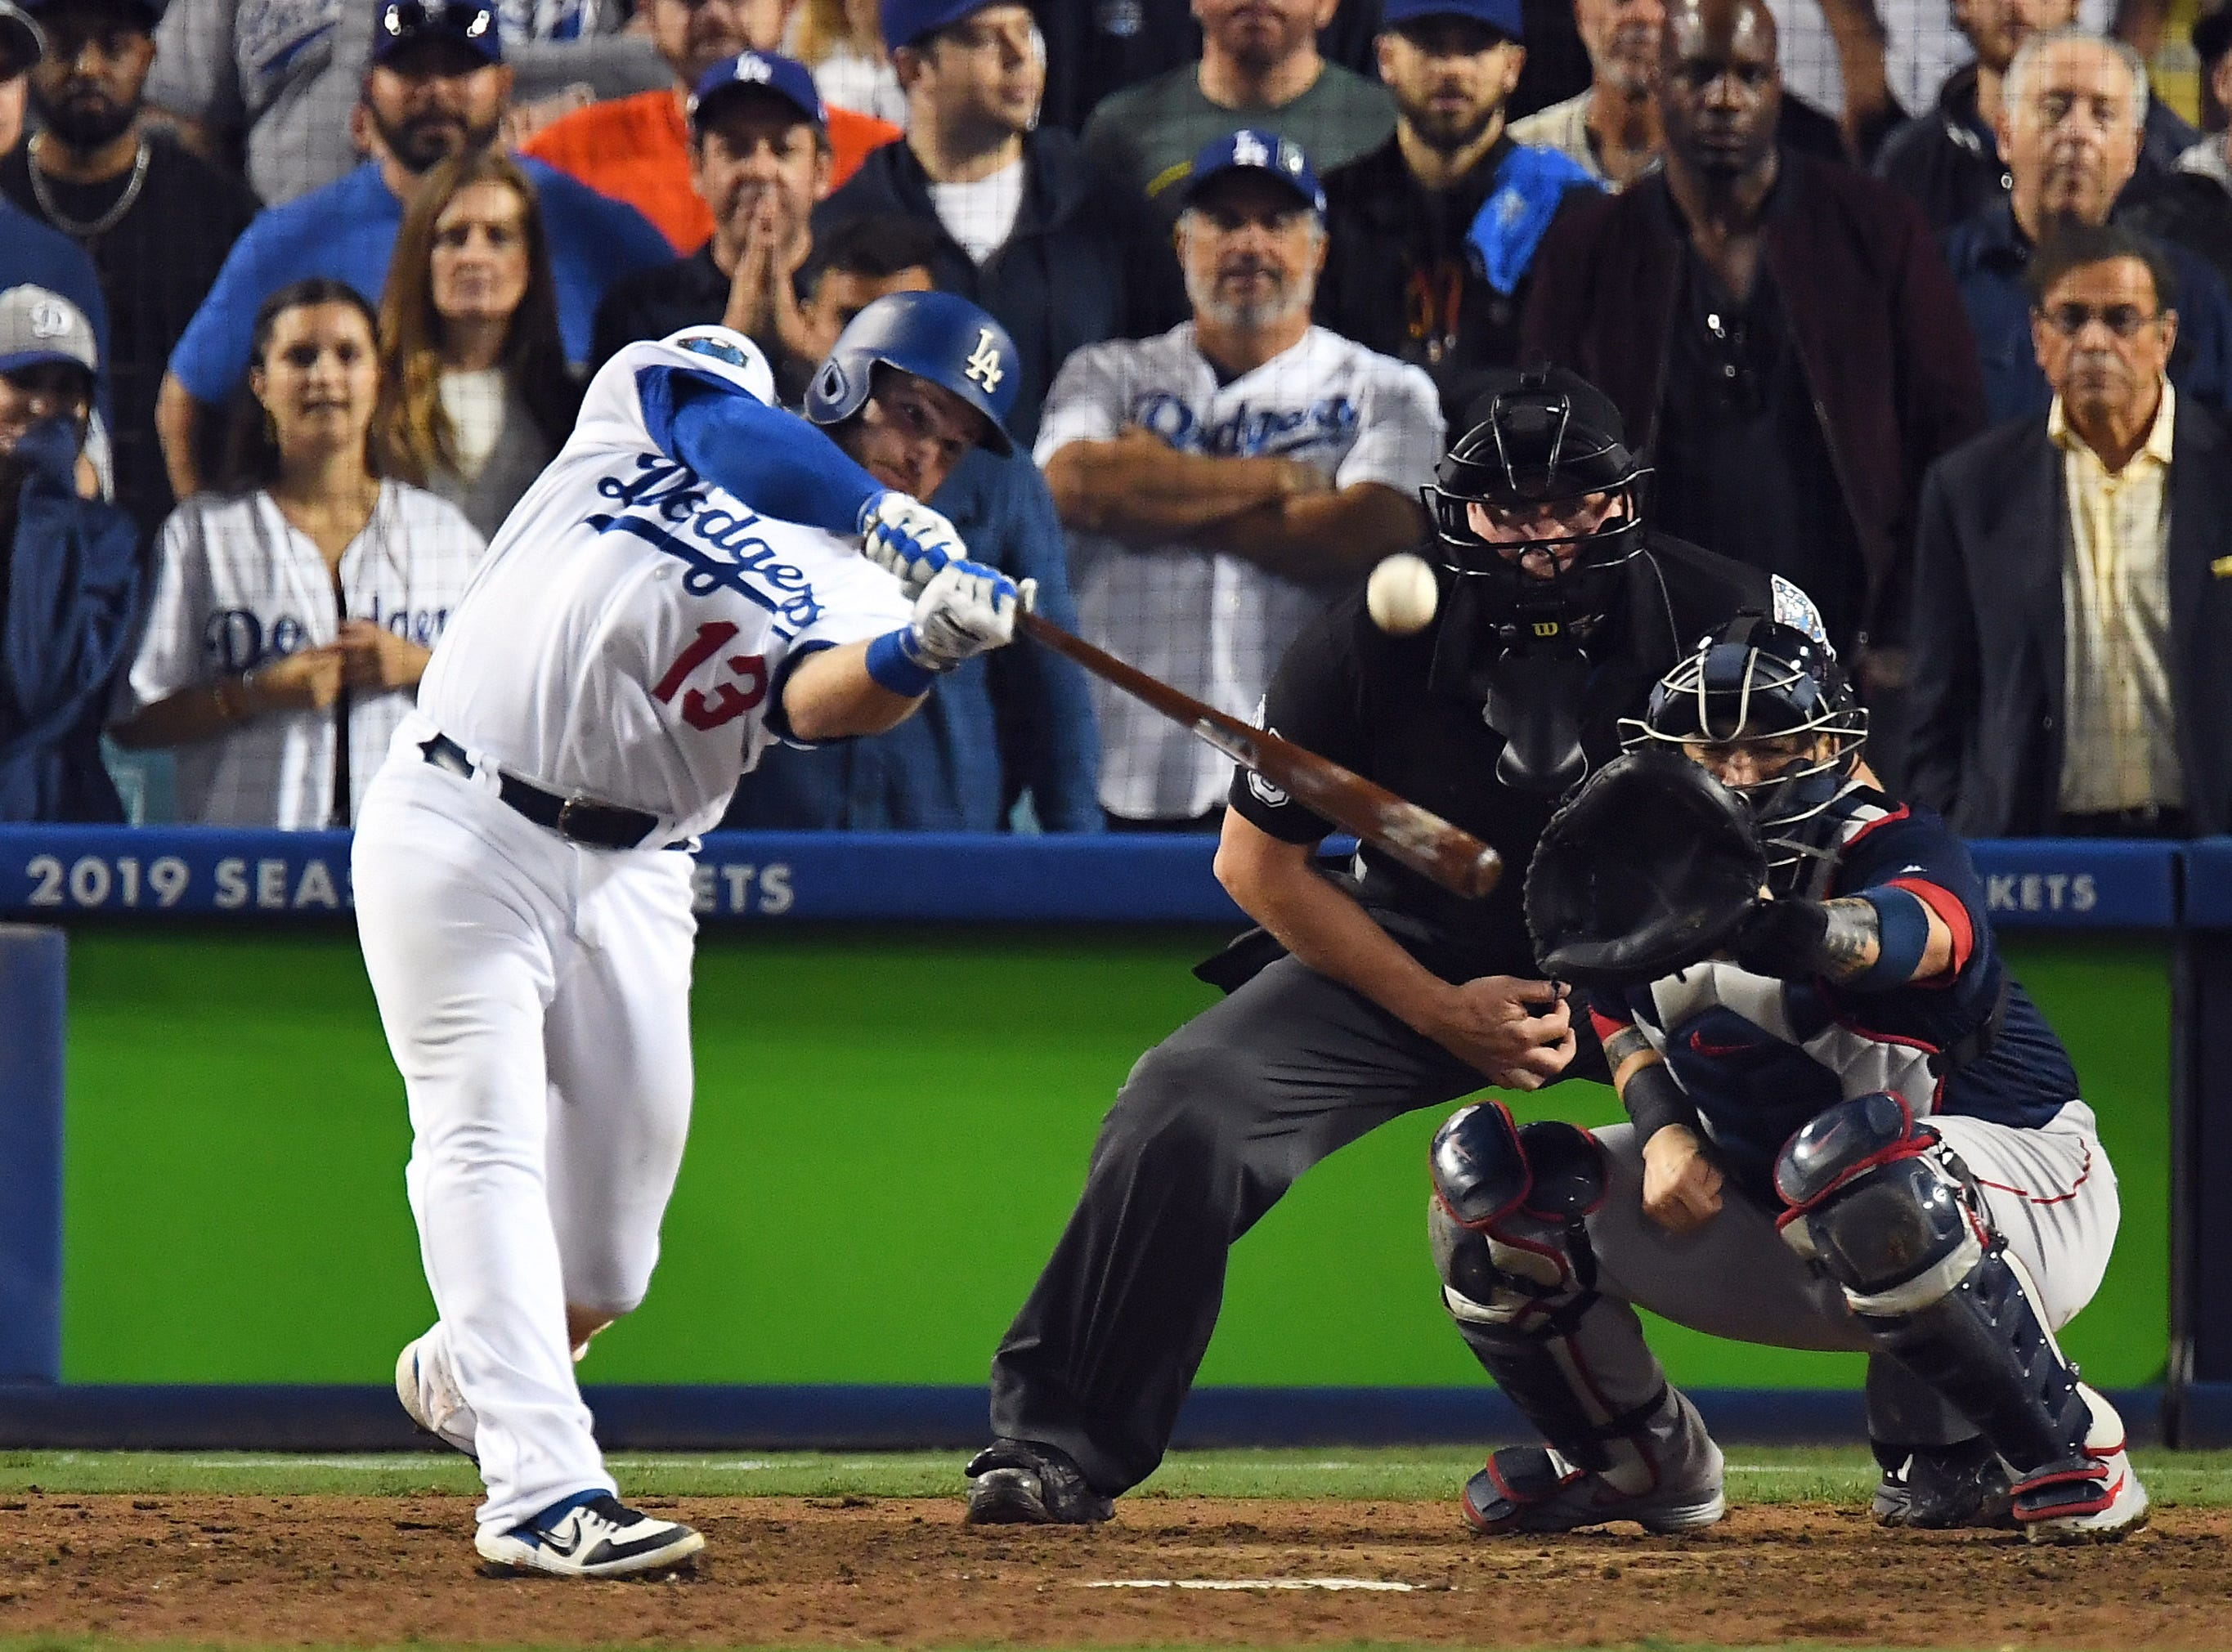 Game 3 at Dodger Stadium: Max Muncy hits a walk-off homer in the 18th.